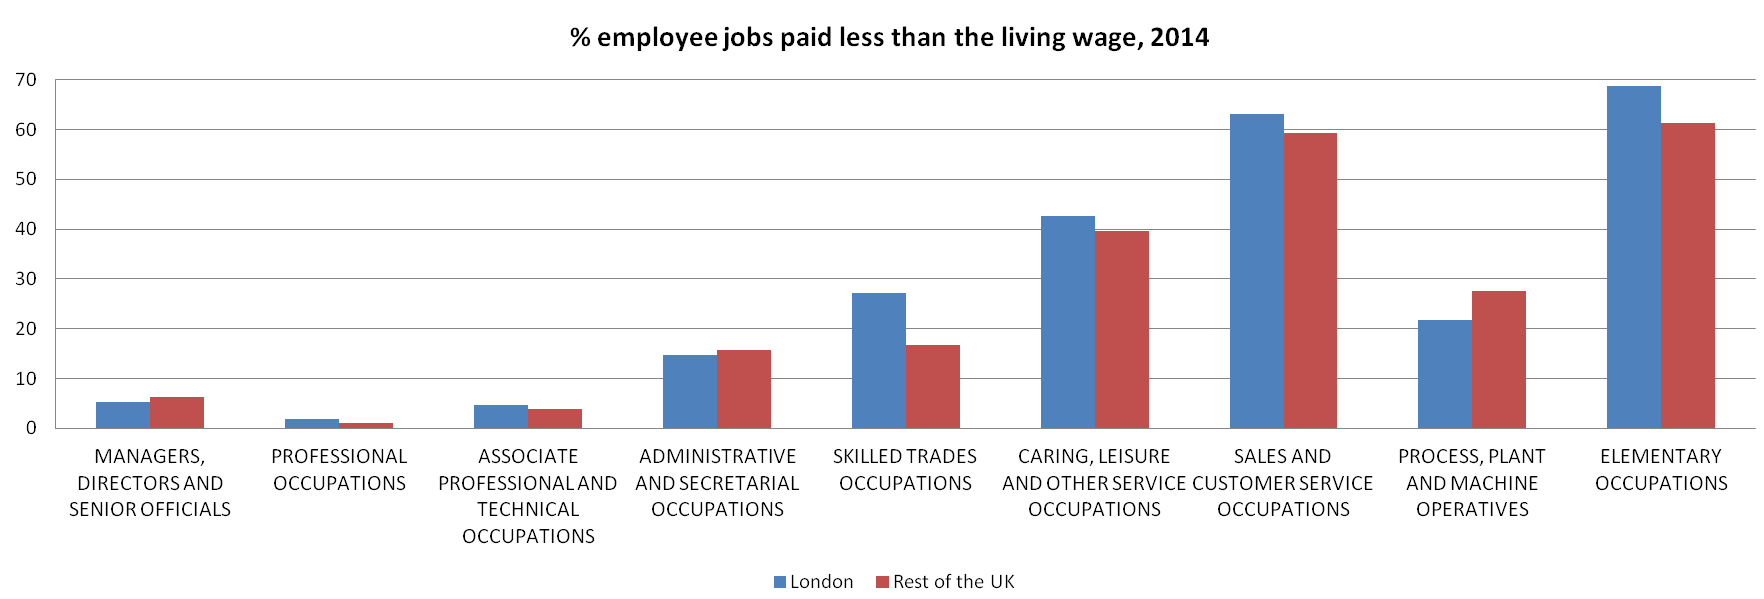 Figure 9: Proportions of employee jobs paid less than the living wage in 2014, by occupation